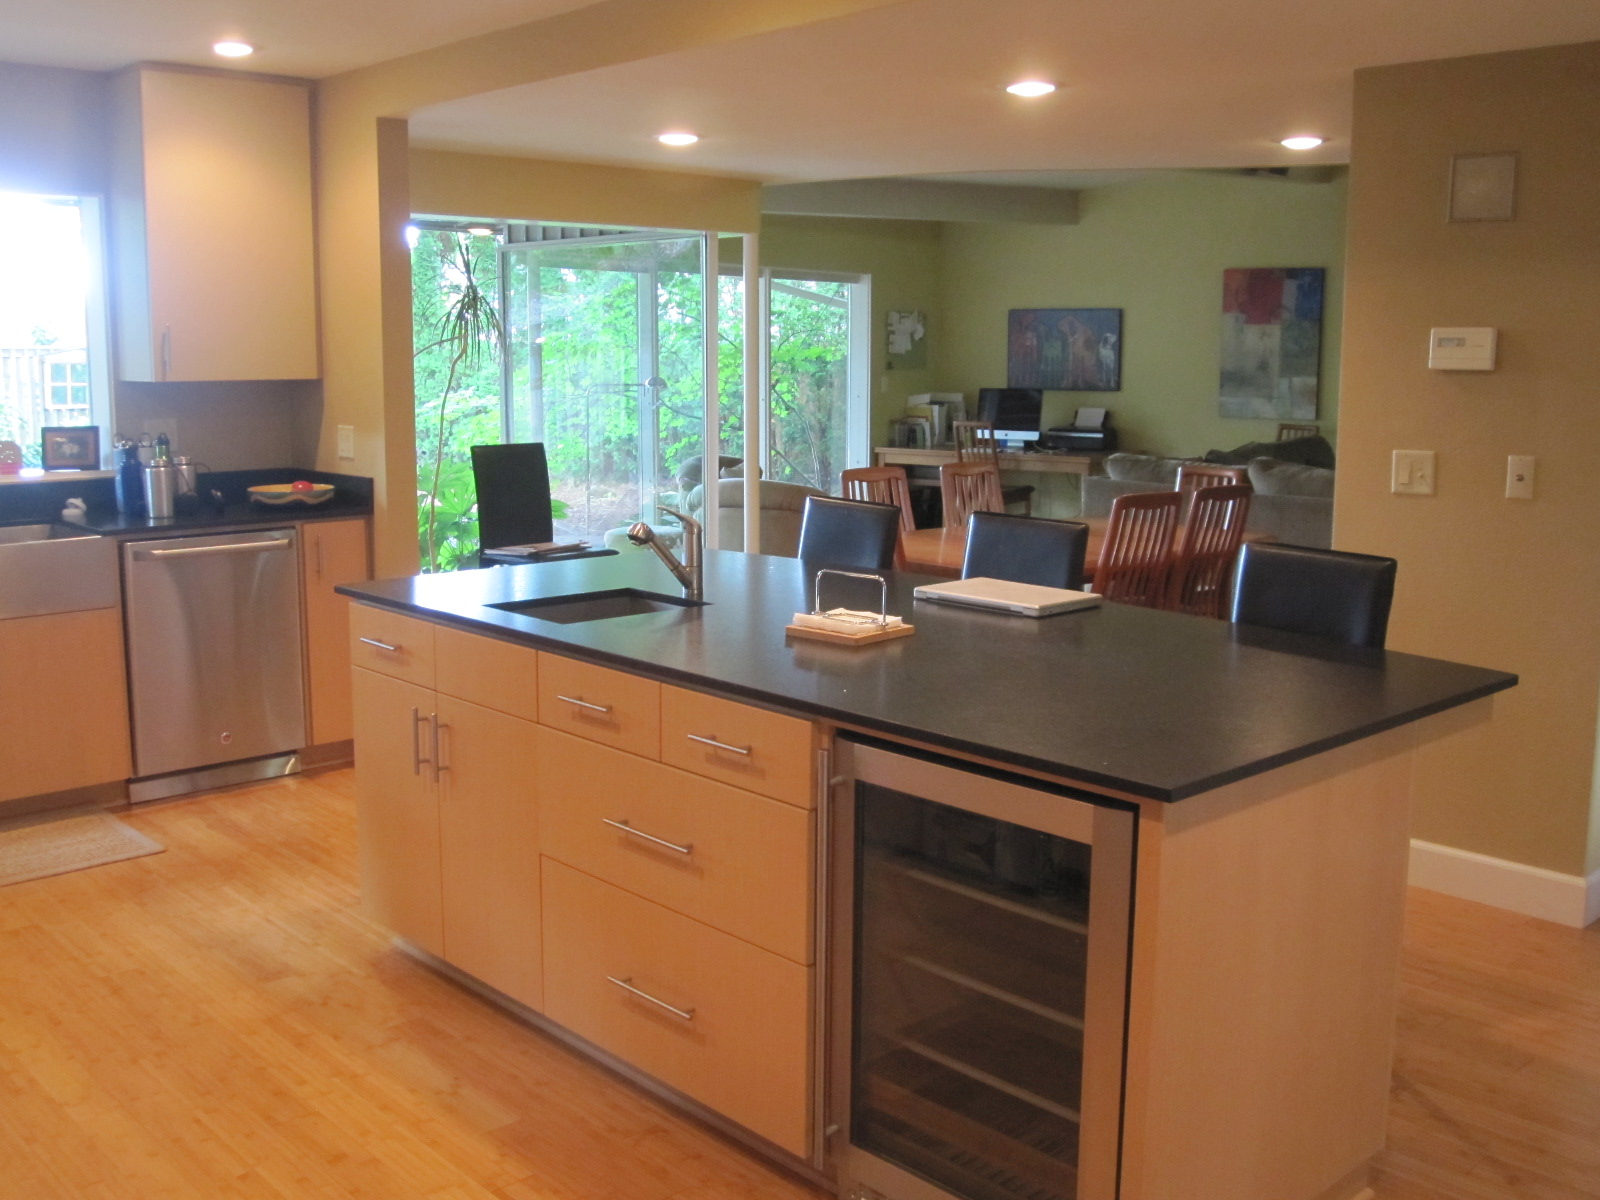 A brand new kitchen associated designs for Brand new kitchen designs